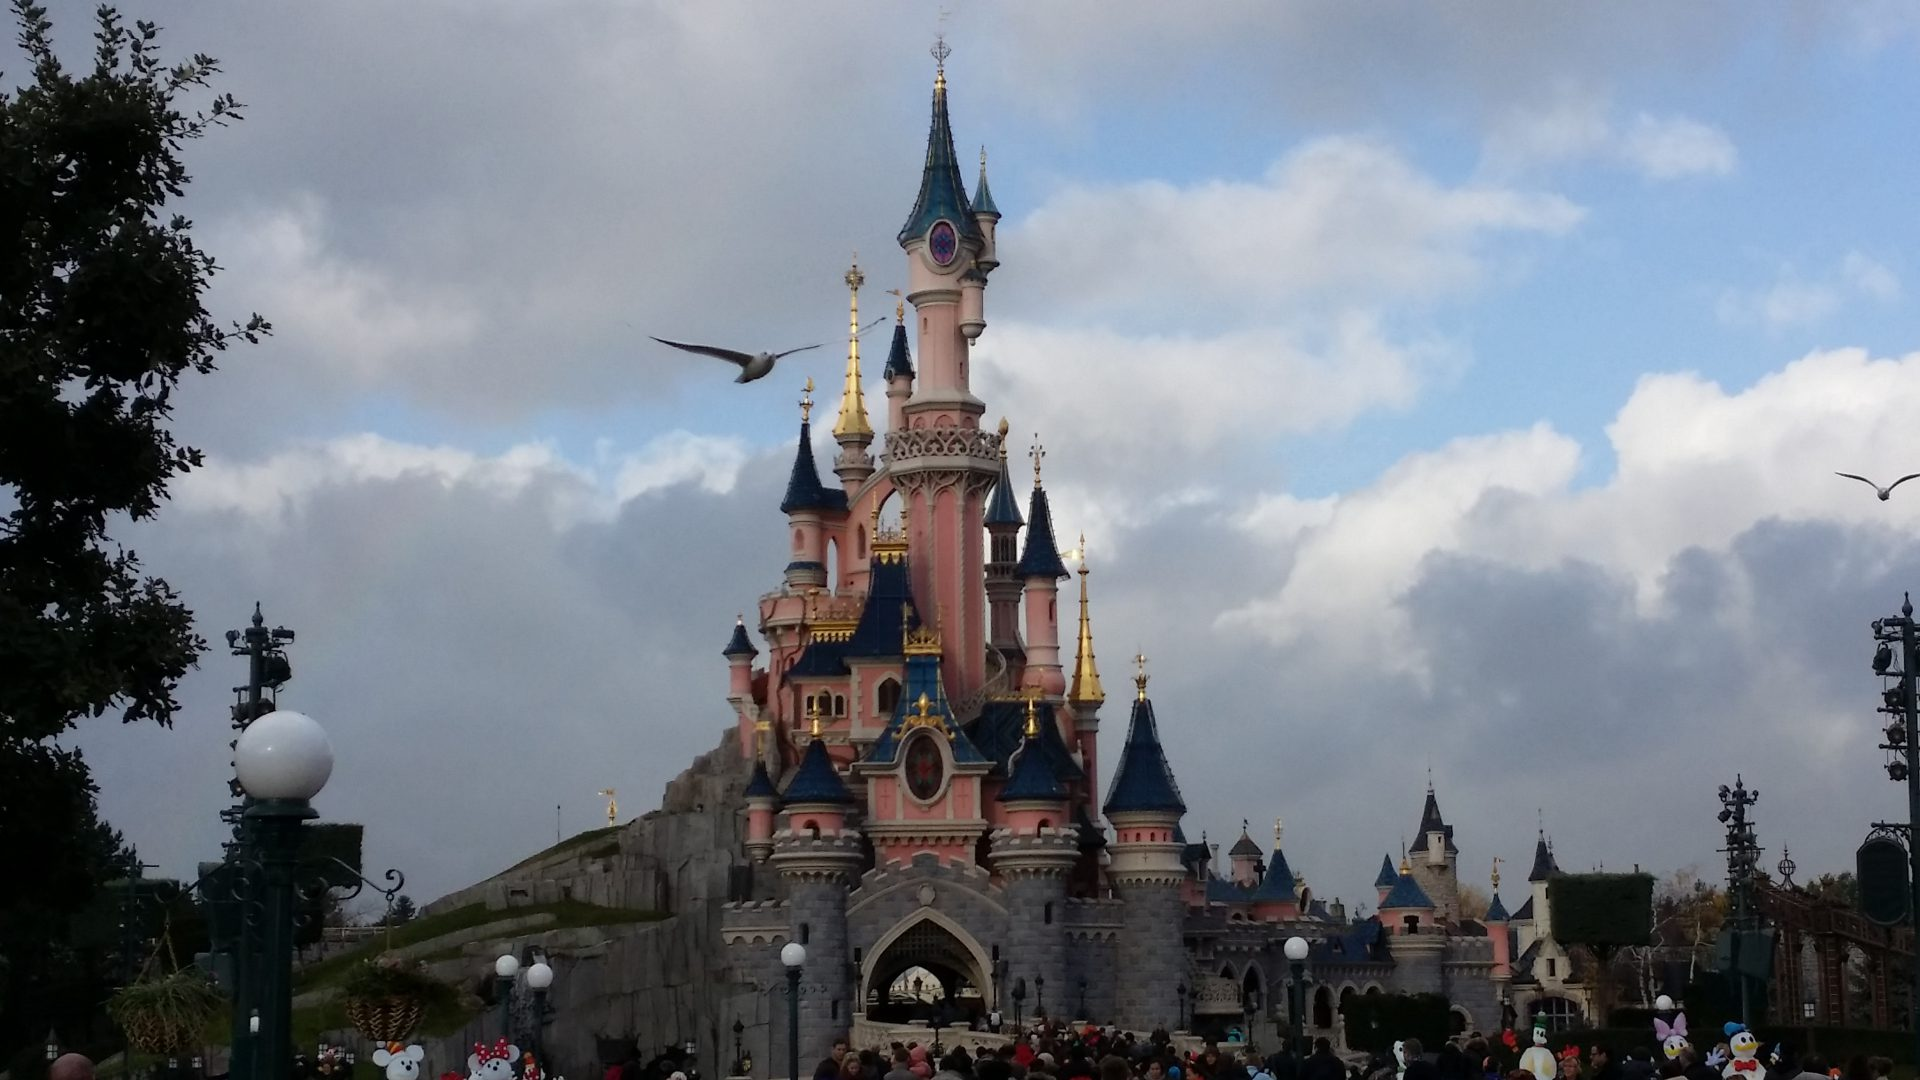 Visitare Disneyland Paris in un giorno